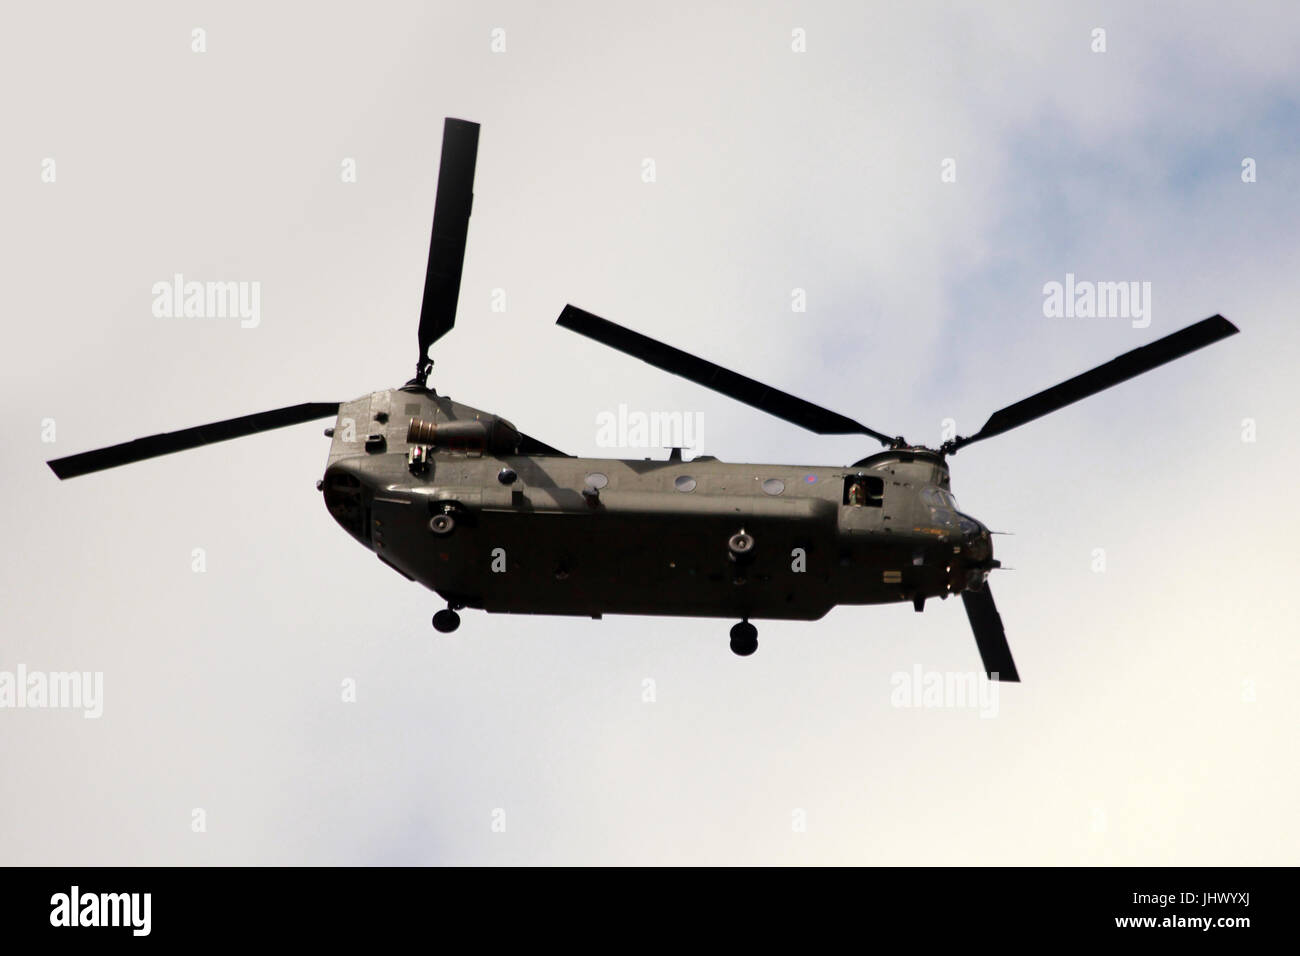 CH-47 Chinook,military helicopter - Stock Image